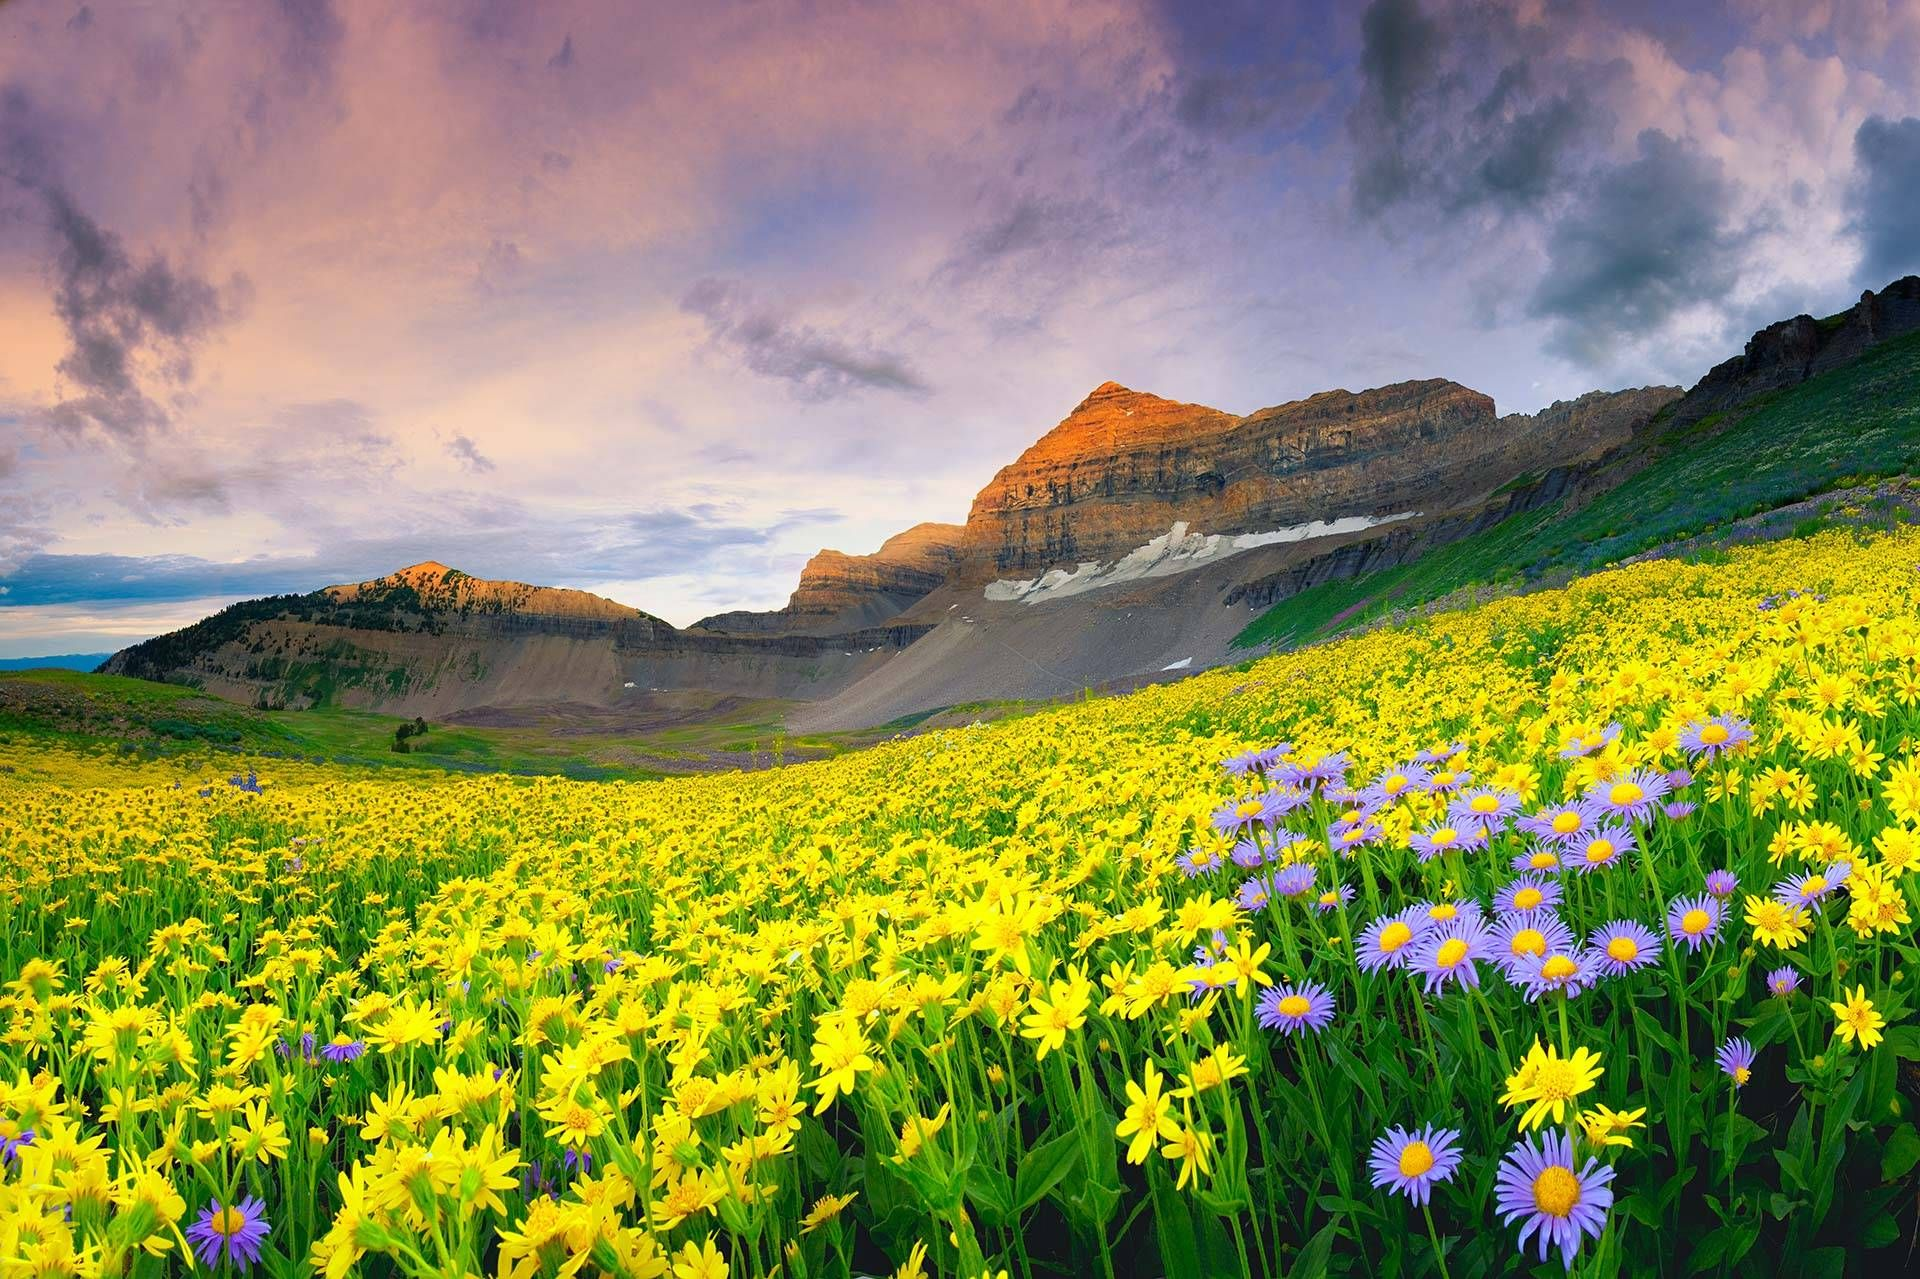 Pin By Judith Cameron On Beautiful Nature Valley Of Flowers Best Nature Images Colorful Places